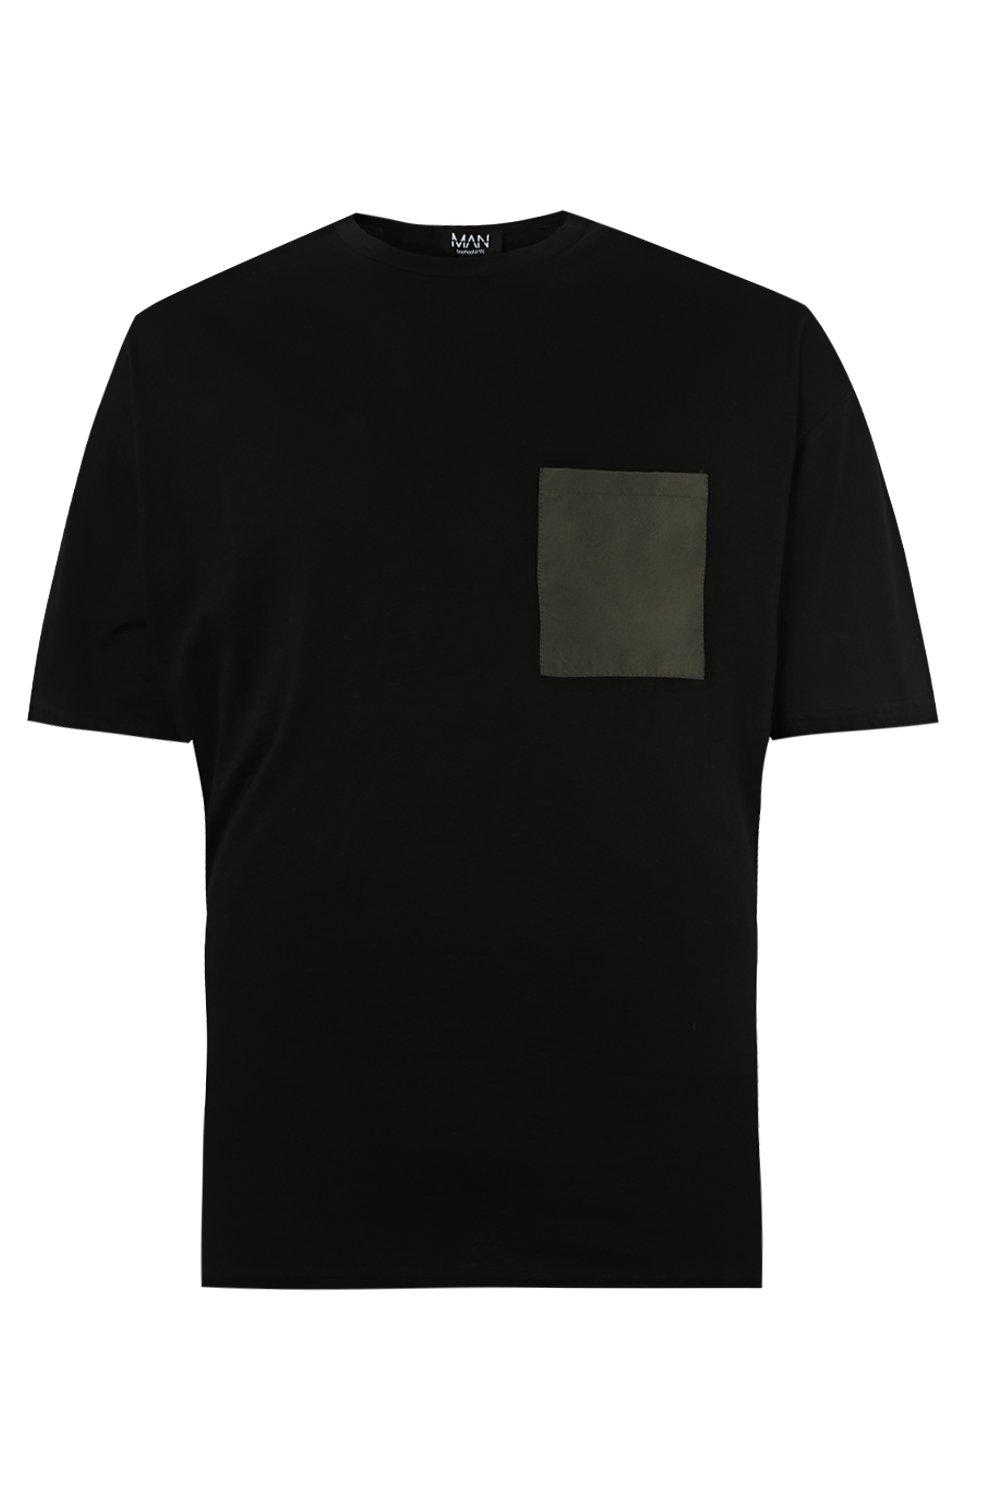 boohooMAN black Oversized T-Shirt With Woven Pocket